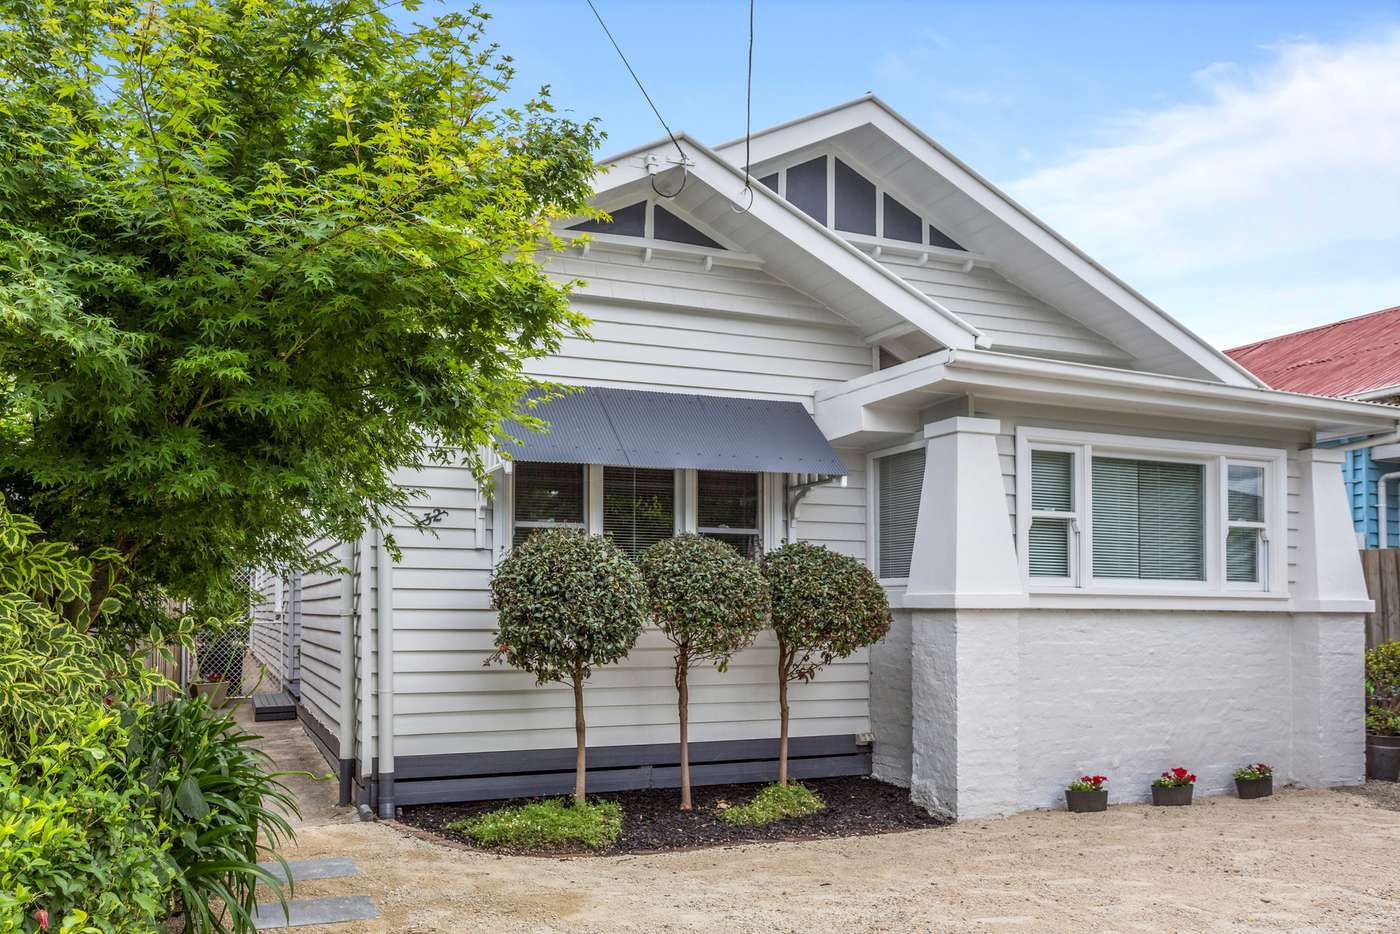 Main view of Homely house listing, 32 Normanby Avenue, Thornbury VIC 3071